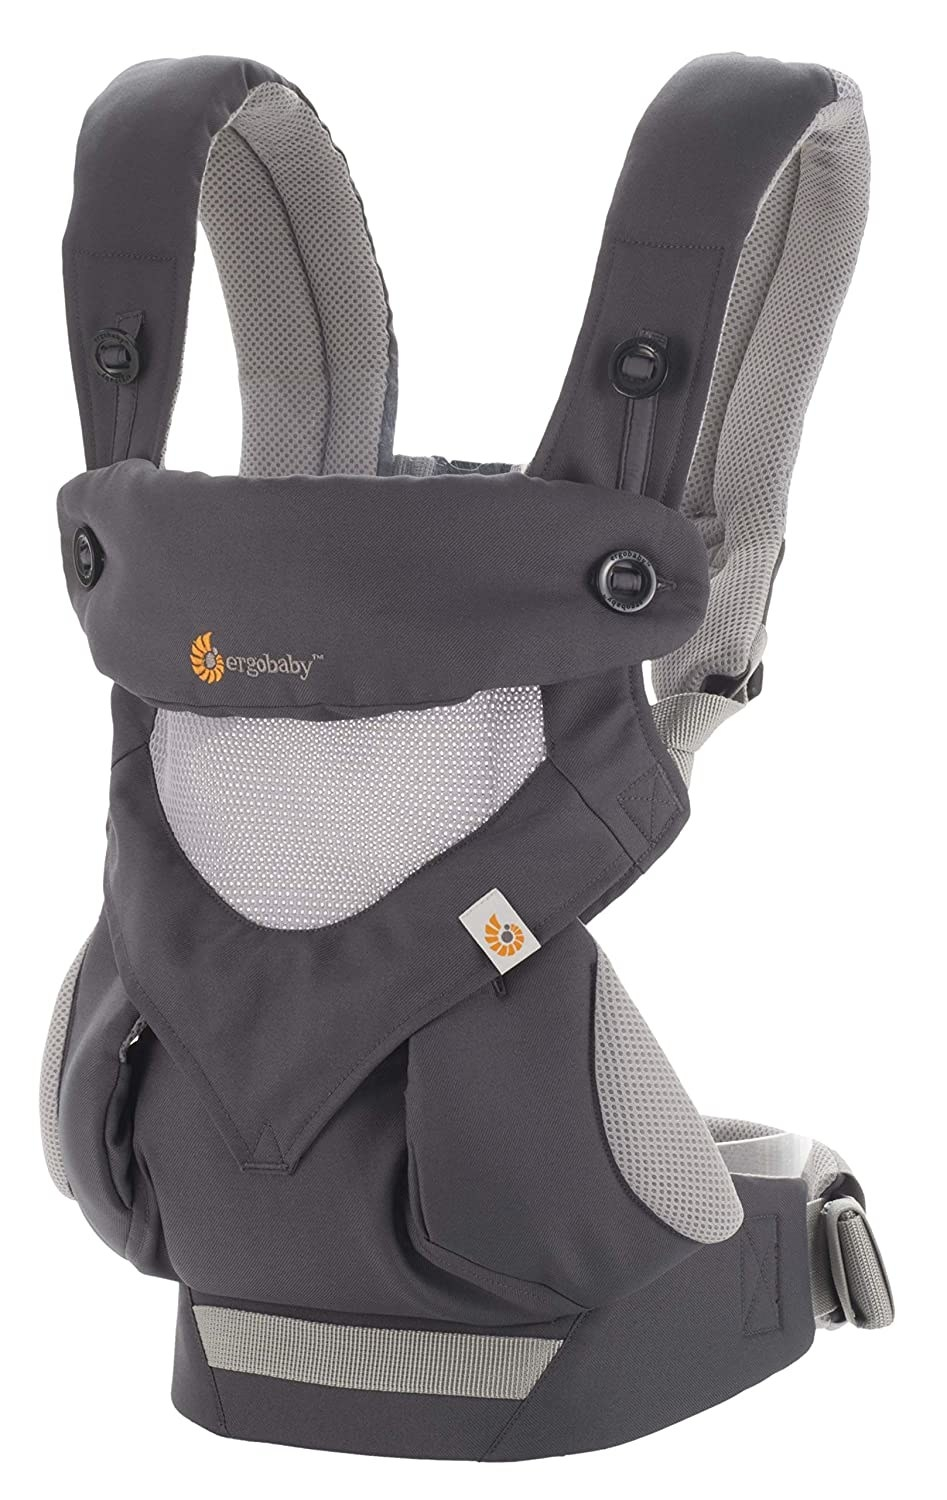 An Ergobaby baby carrier